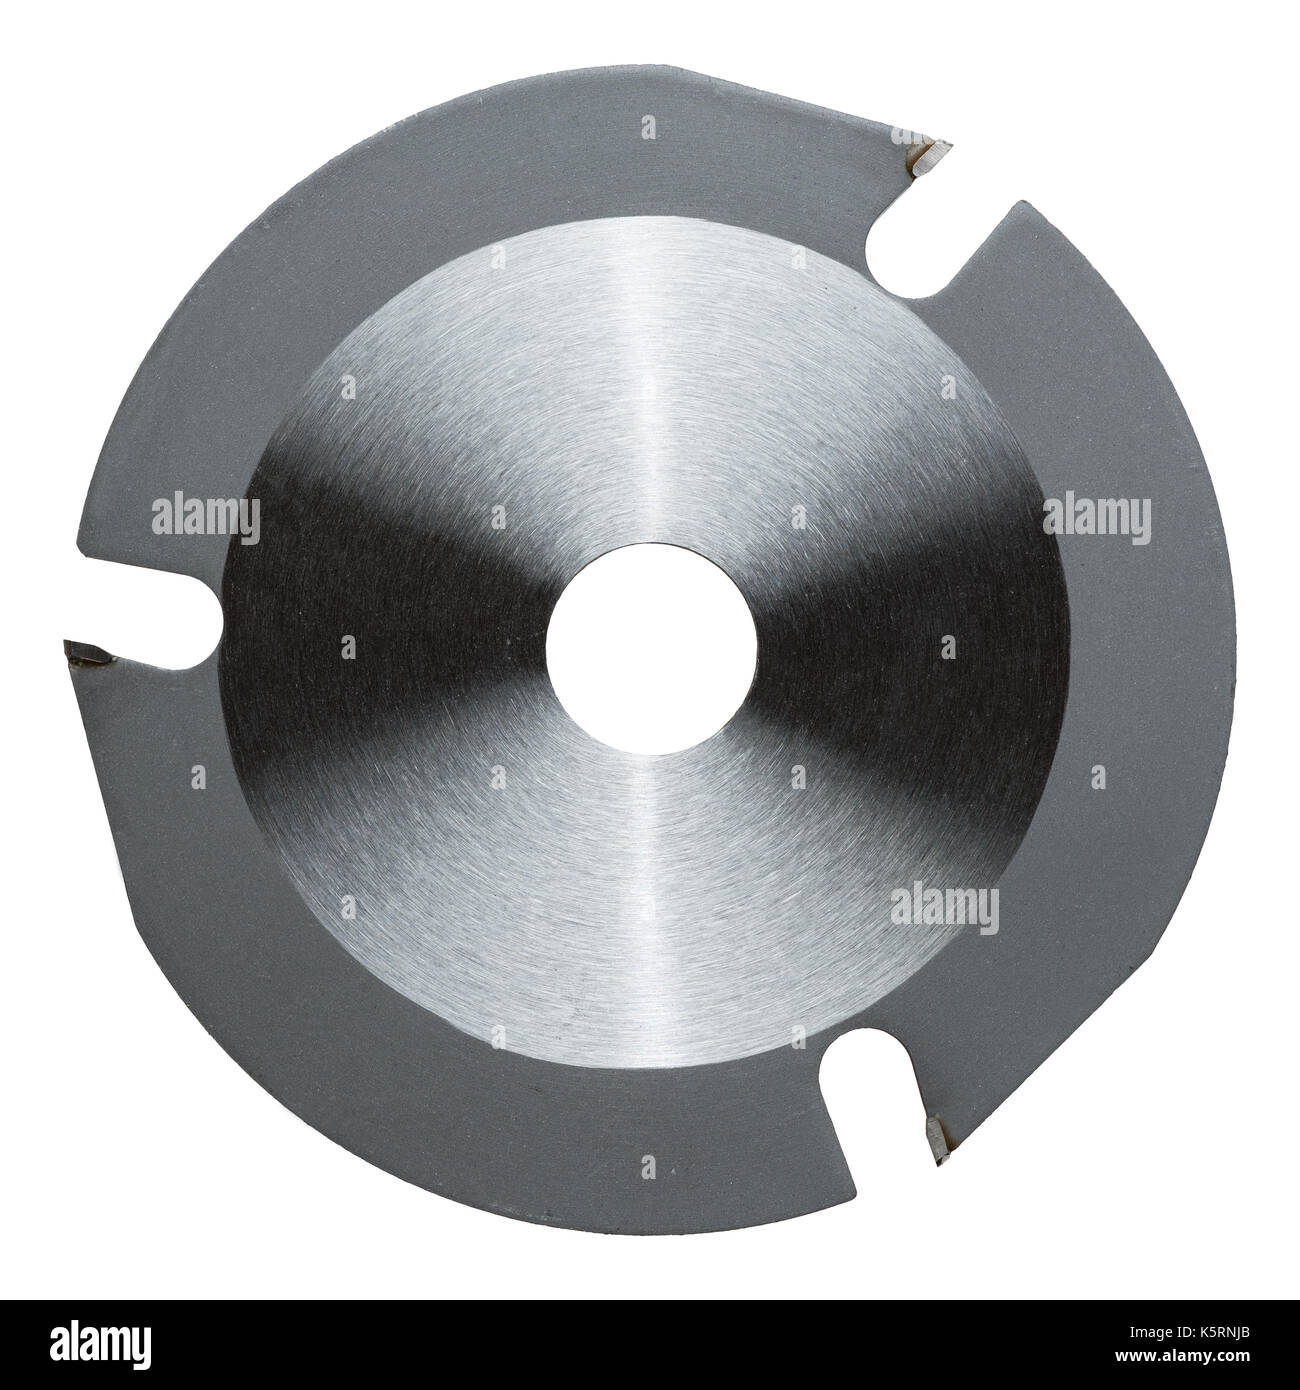 Angle grinder wood cutter disk for rough shaping. - Stock Image